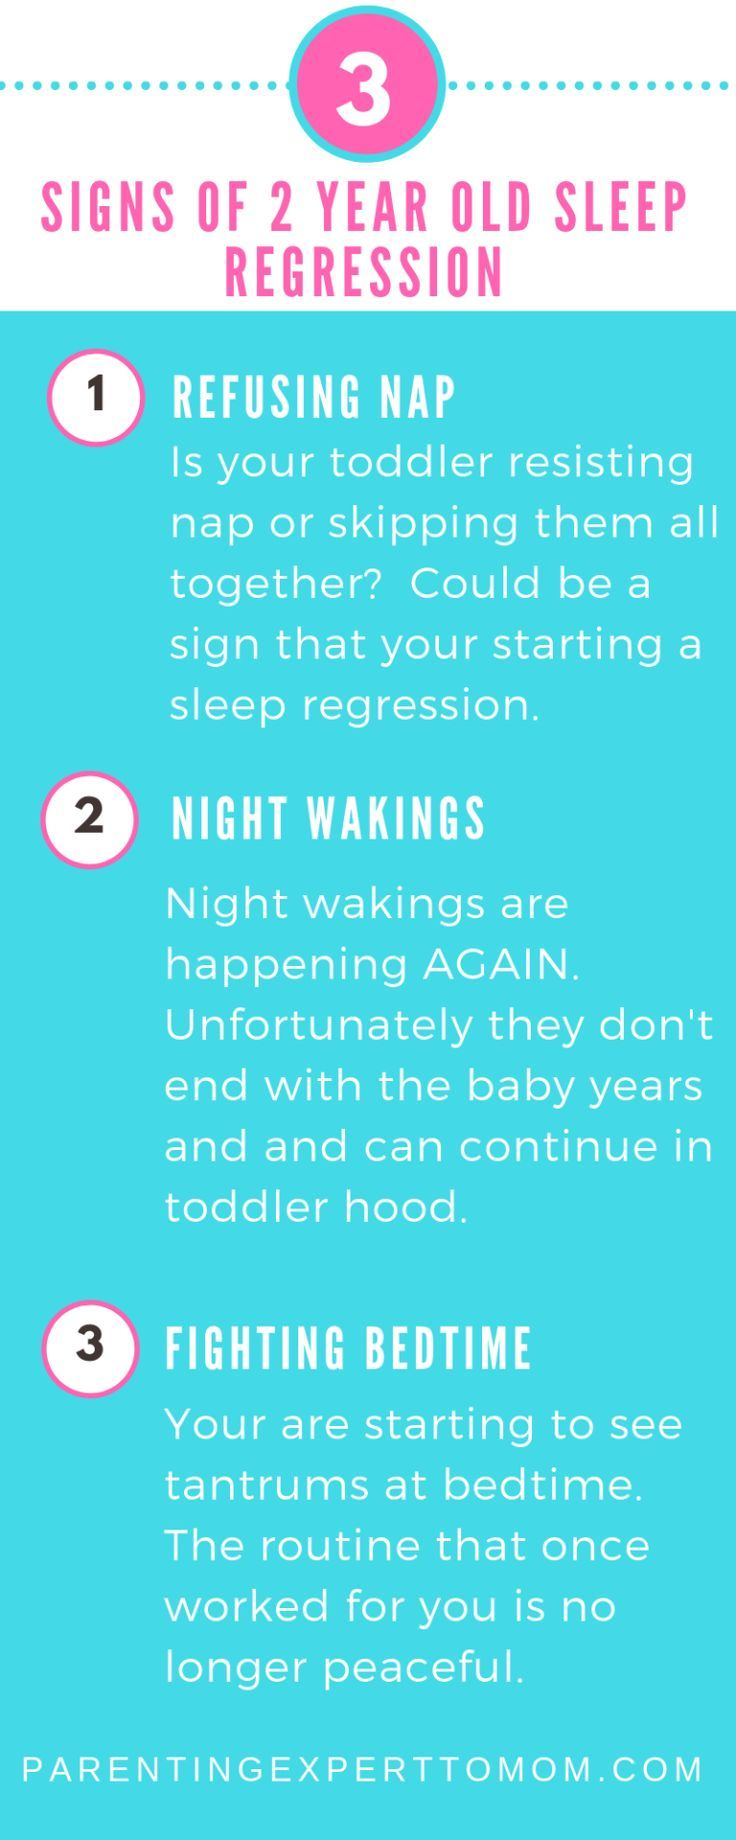 How To Get My 2 Year Old To Sleep Through